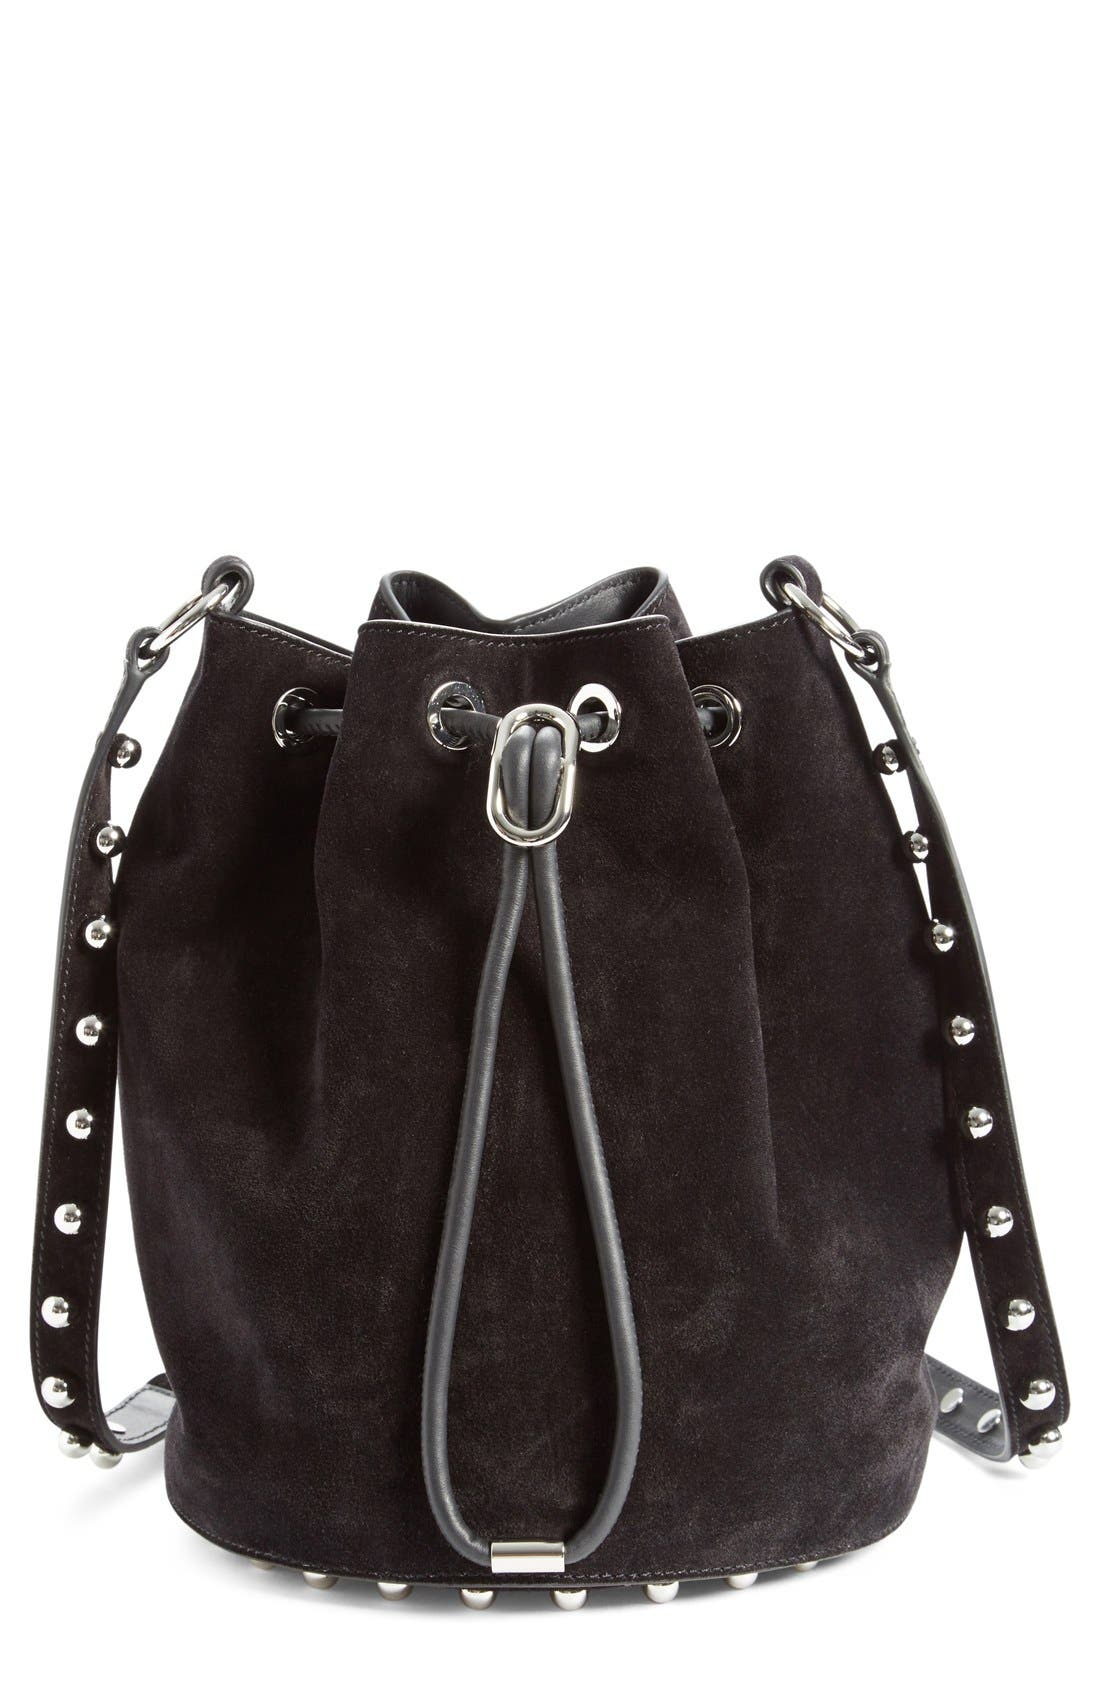 ALEXANDER WANG 'Alpha' Suede Bucket Bag